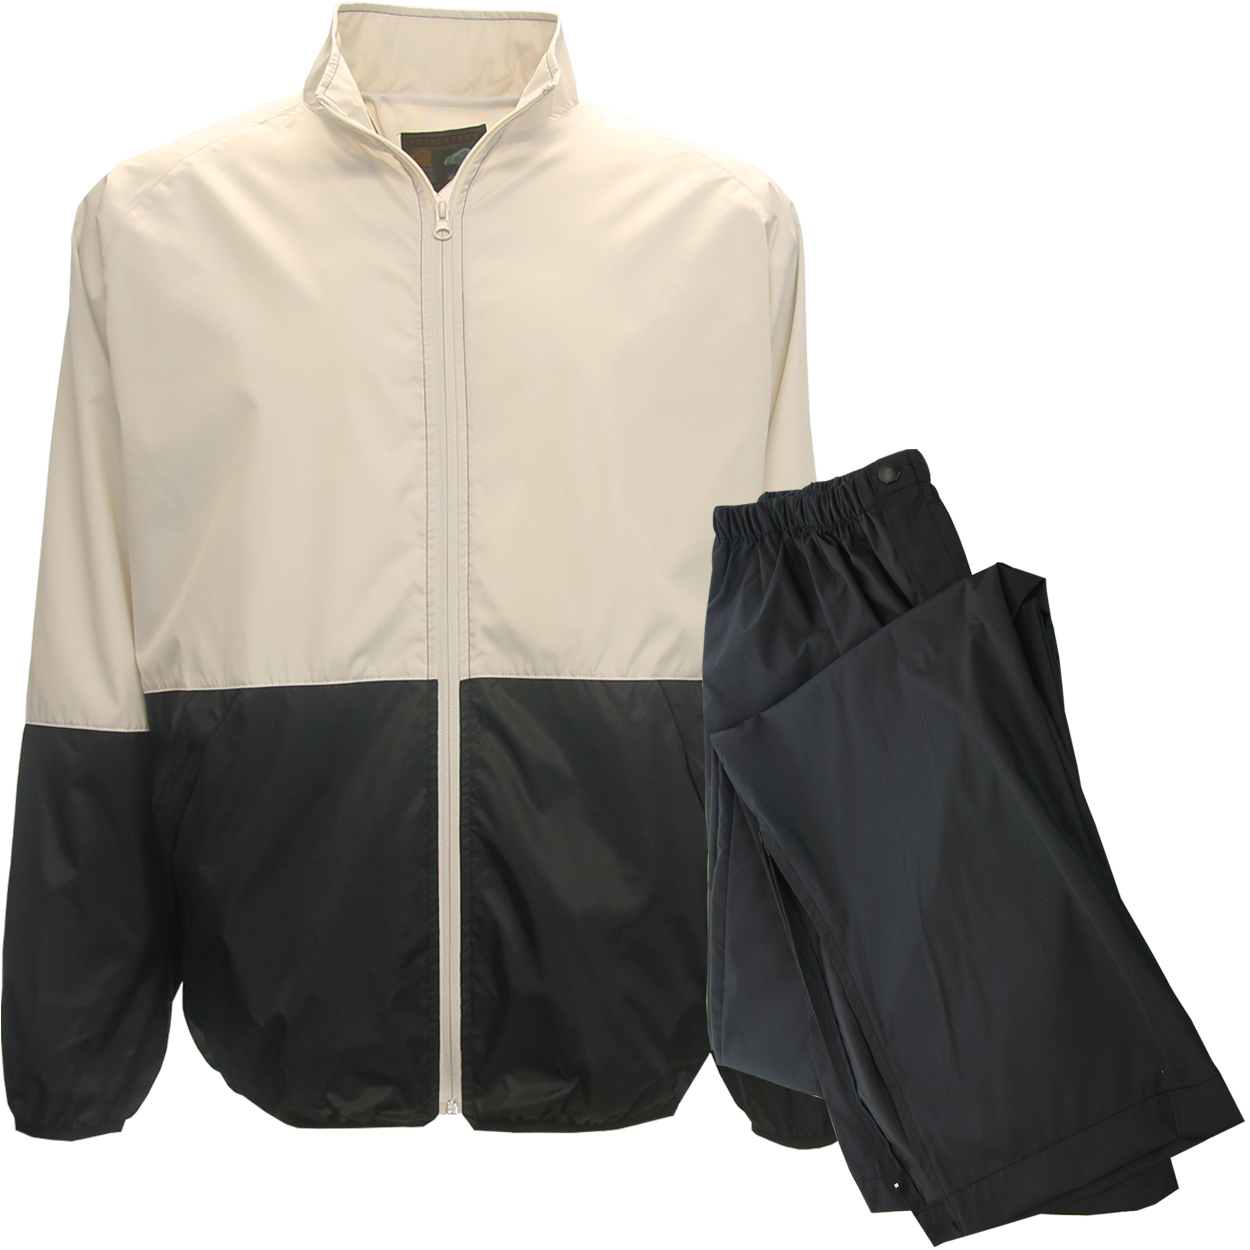 Forrester'S Packable Waterproof Golf Rain Suit